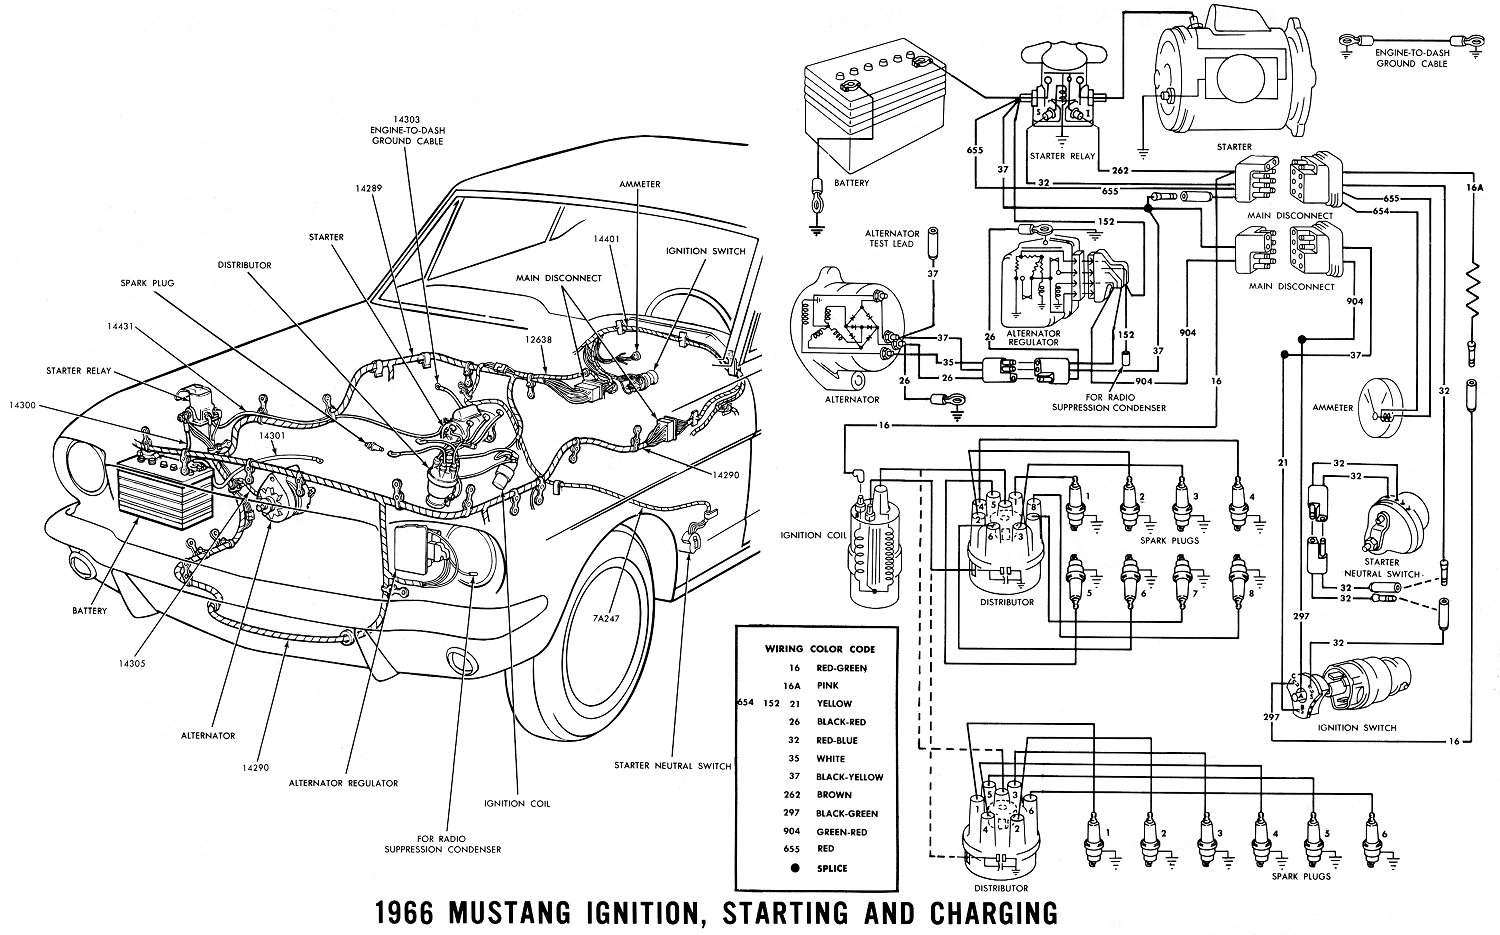 66ignit 1966 mustang wiring diagrams average joe restoration 1965 ford mustang wiring diagrams at mifinder.co